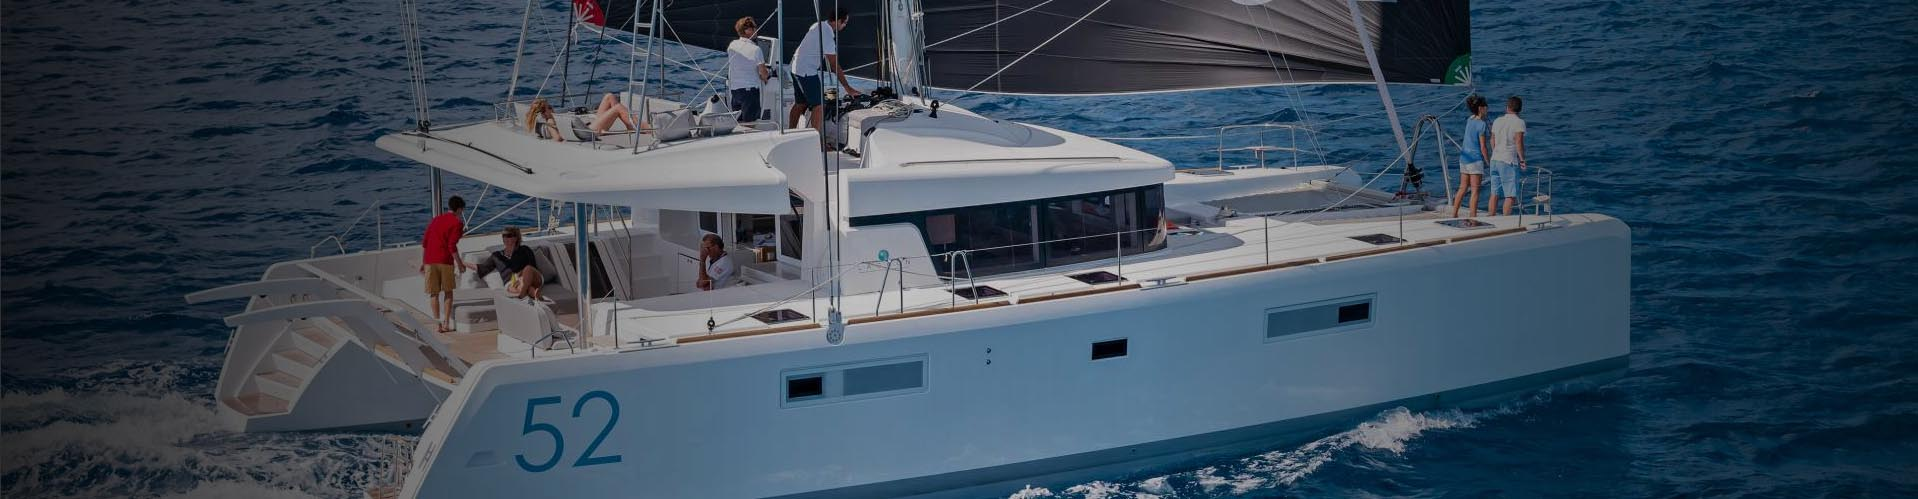 Lagoon, Fountaine Pajot, Nautitech, Leopard and more